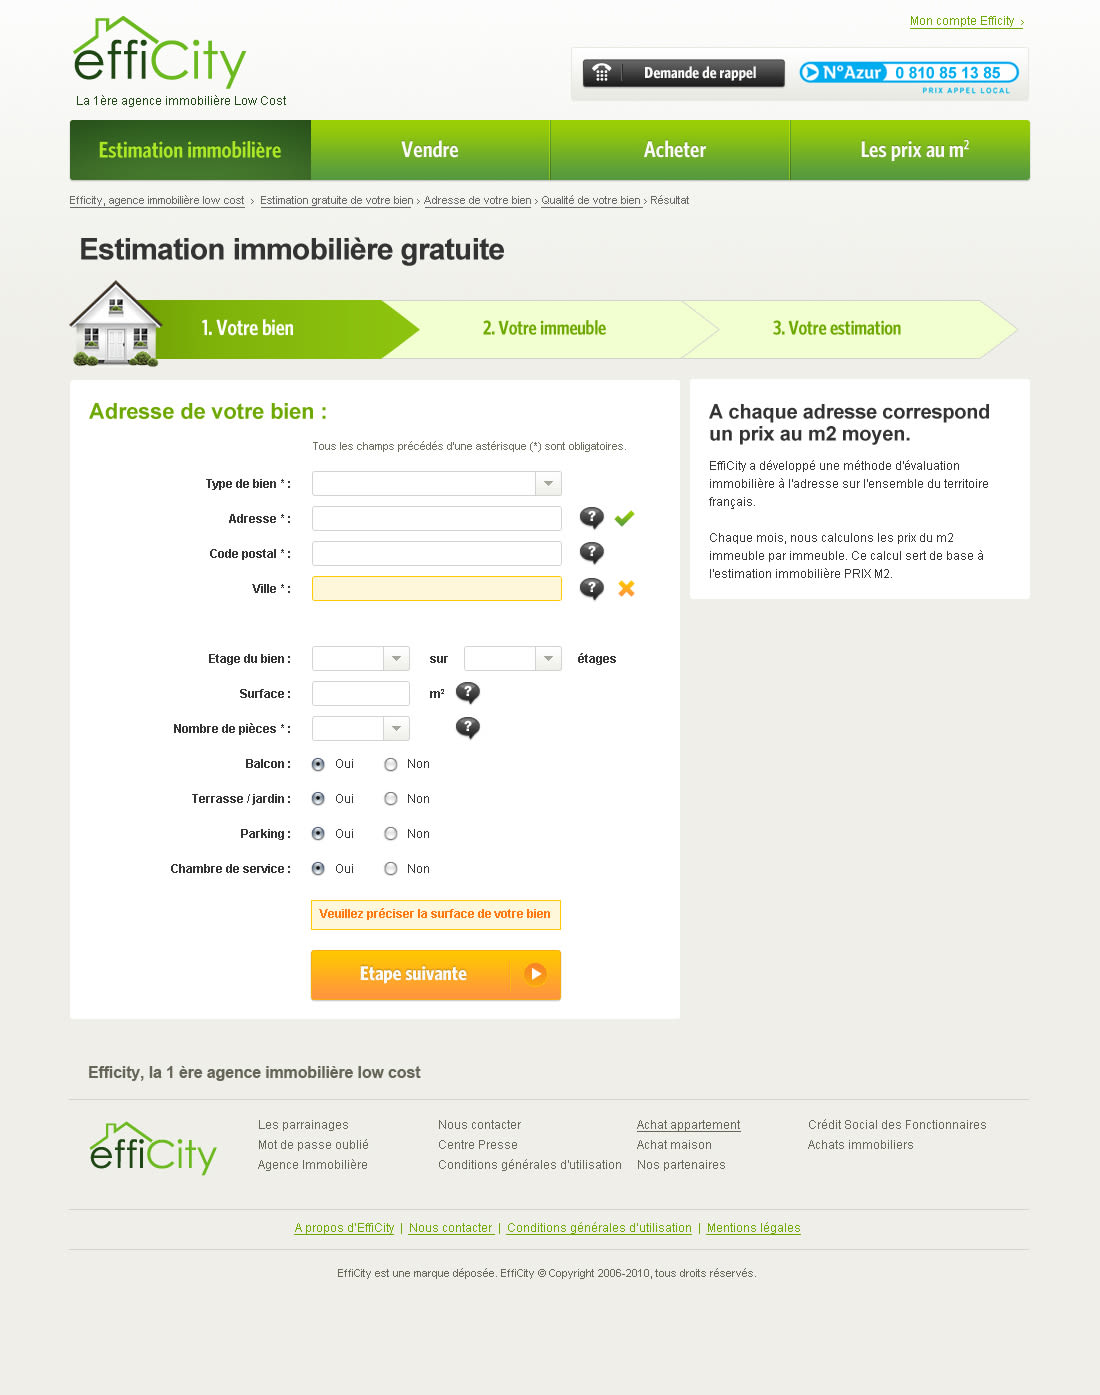 Efficity - Estimation formulaire